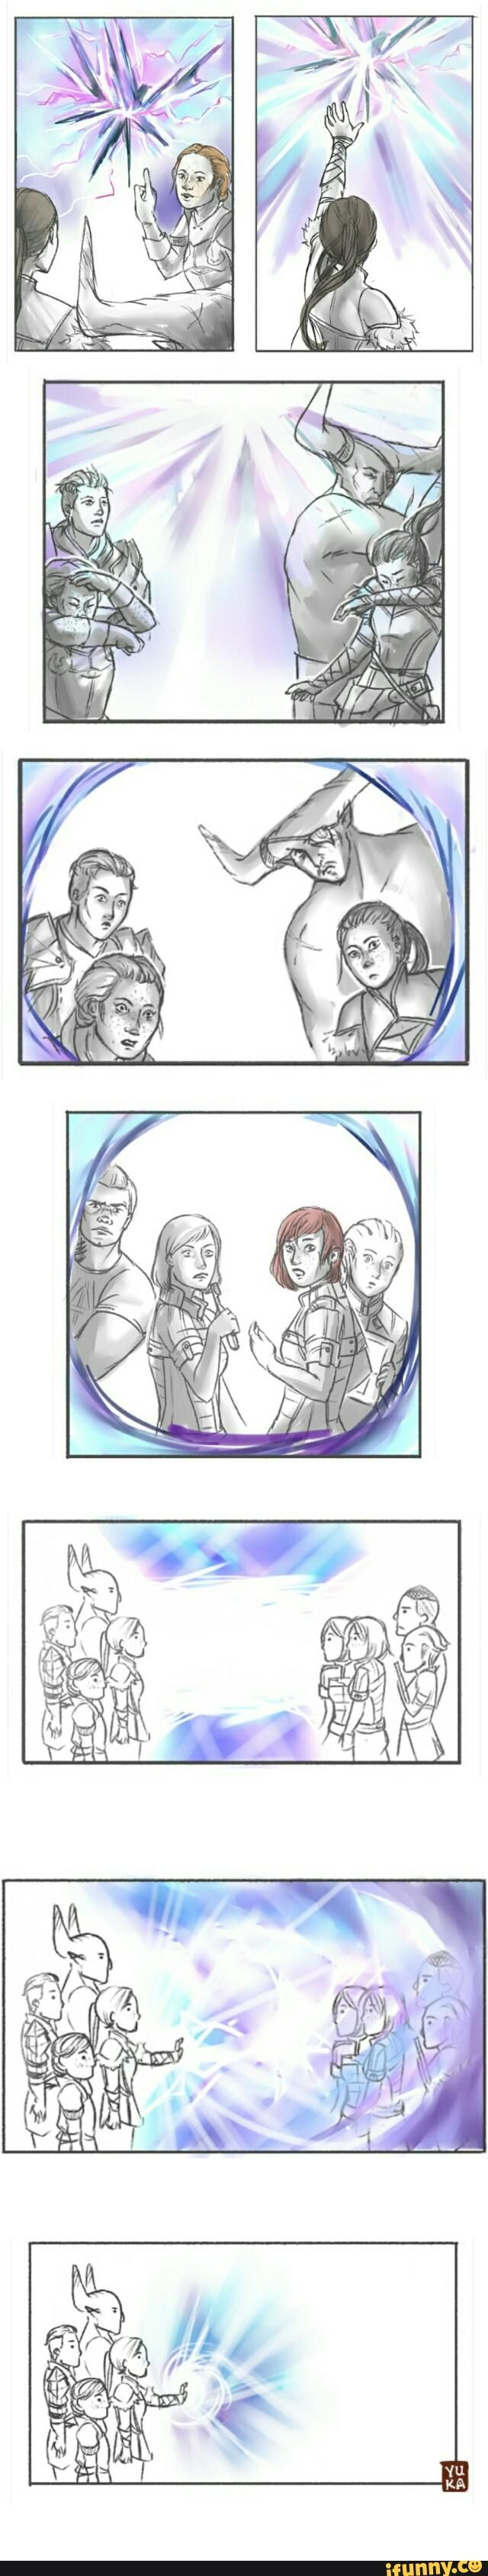 This would have been awesome. I just realized that they are all each other's voice actors, Bull and James, Liara and Harding, Inquisitor and Traynor, and of course, Shepard and Krem.